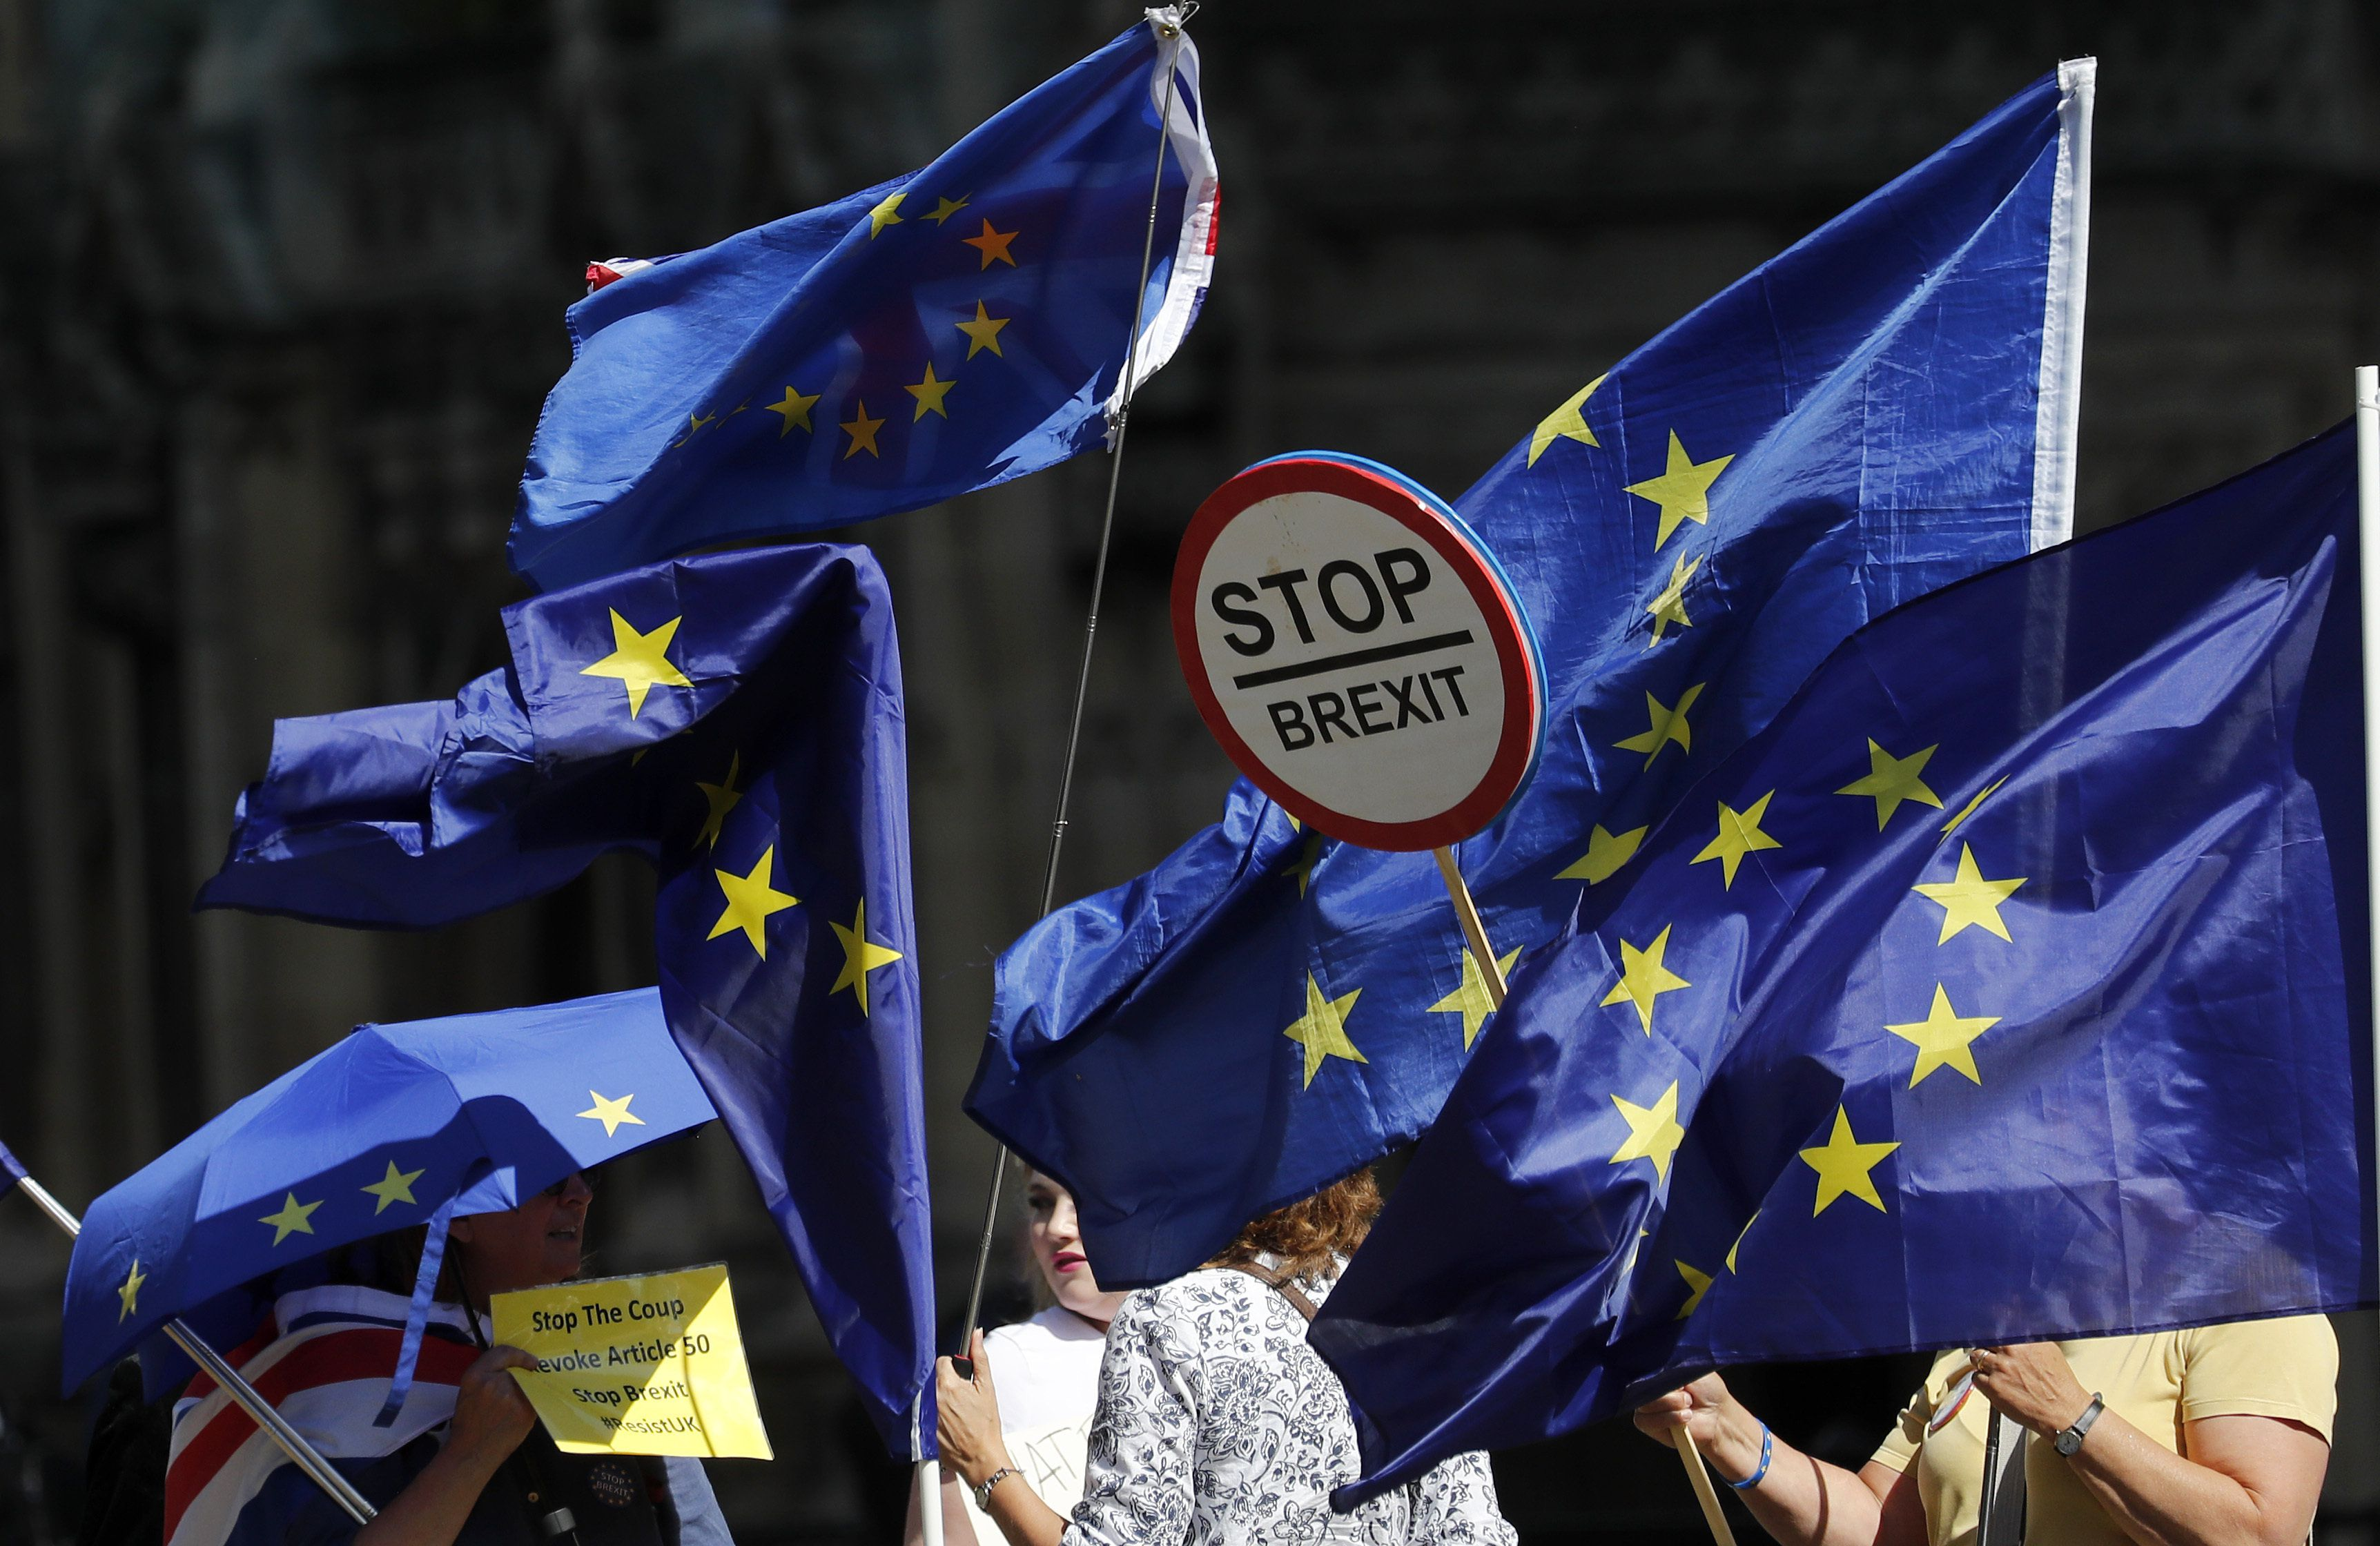 As Brexit approaches, Project Fear may not be an exaggeration